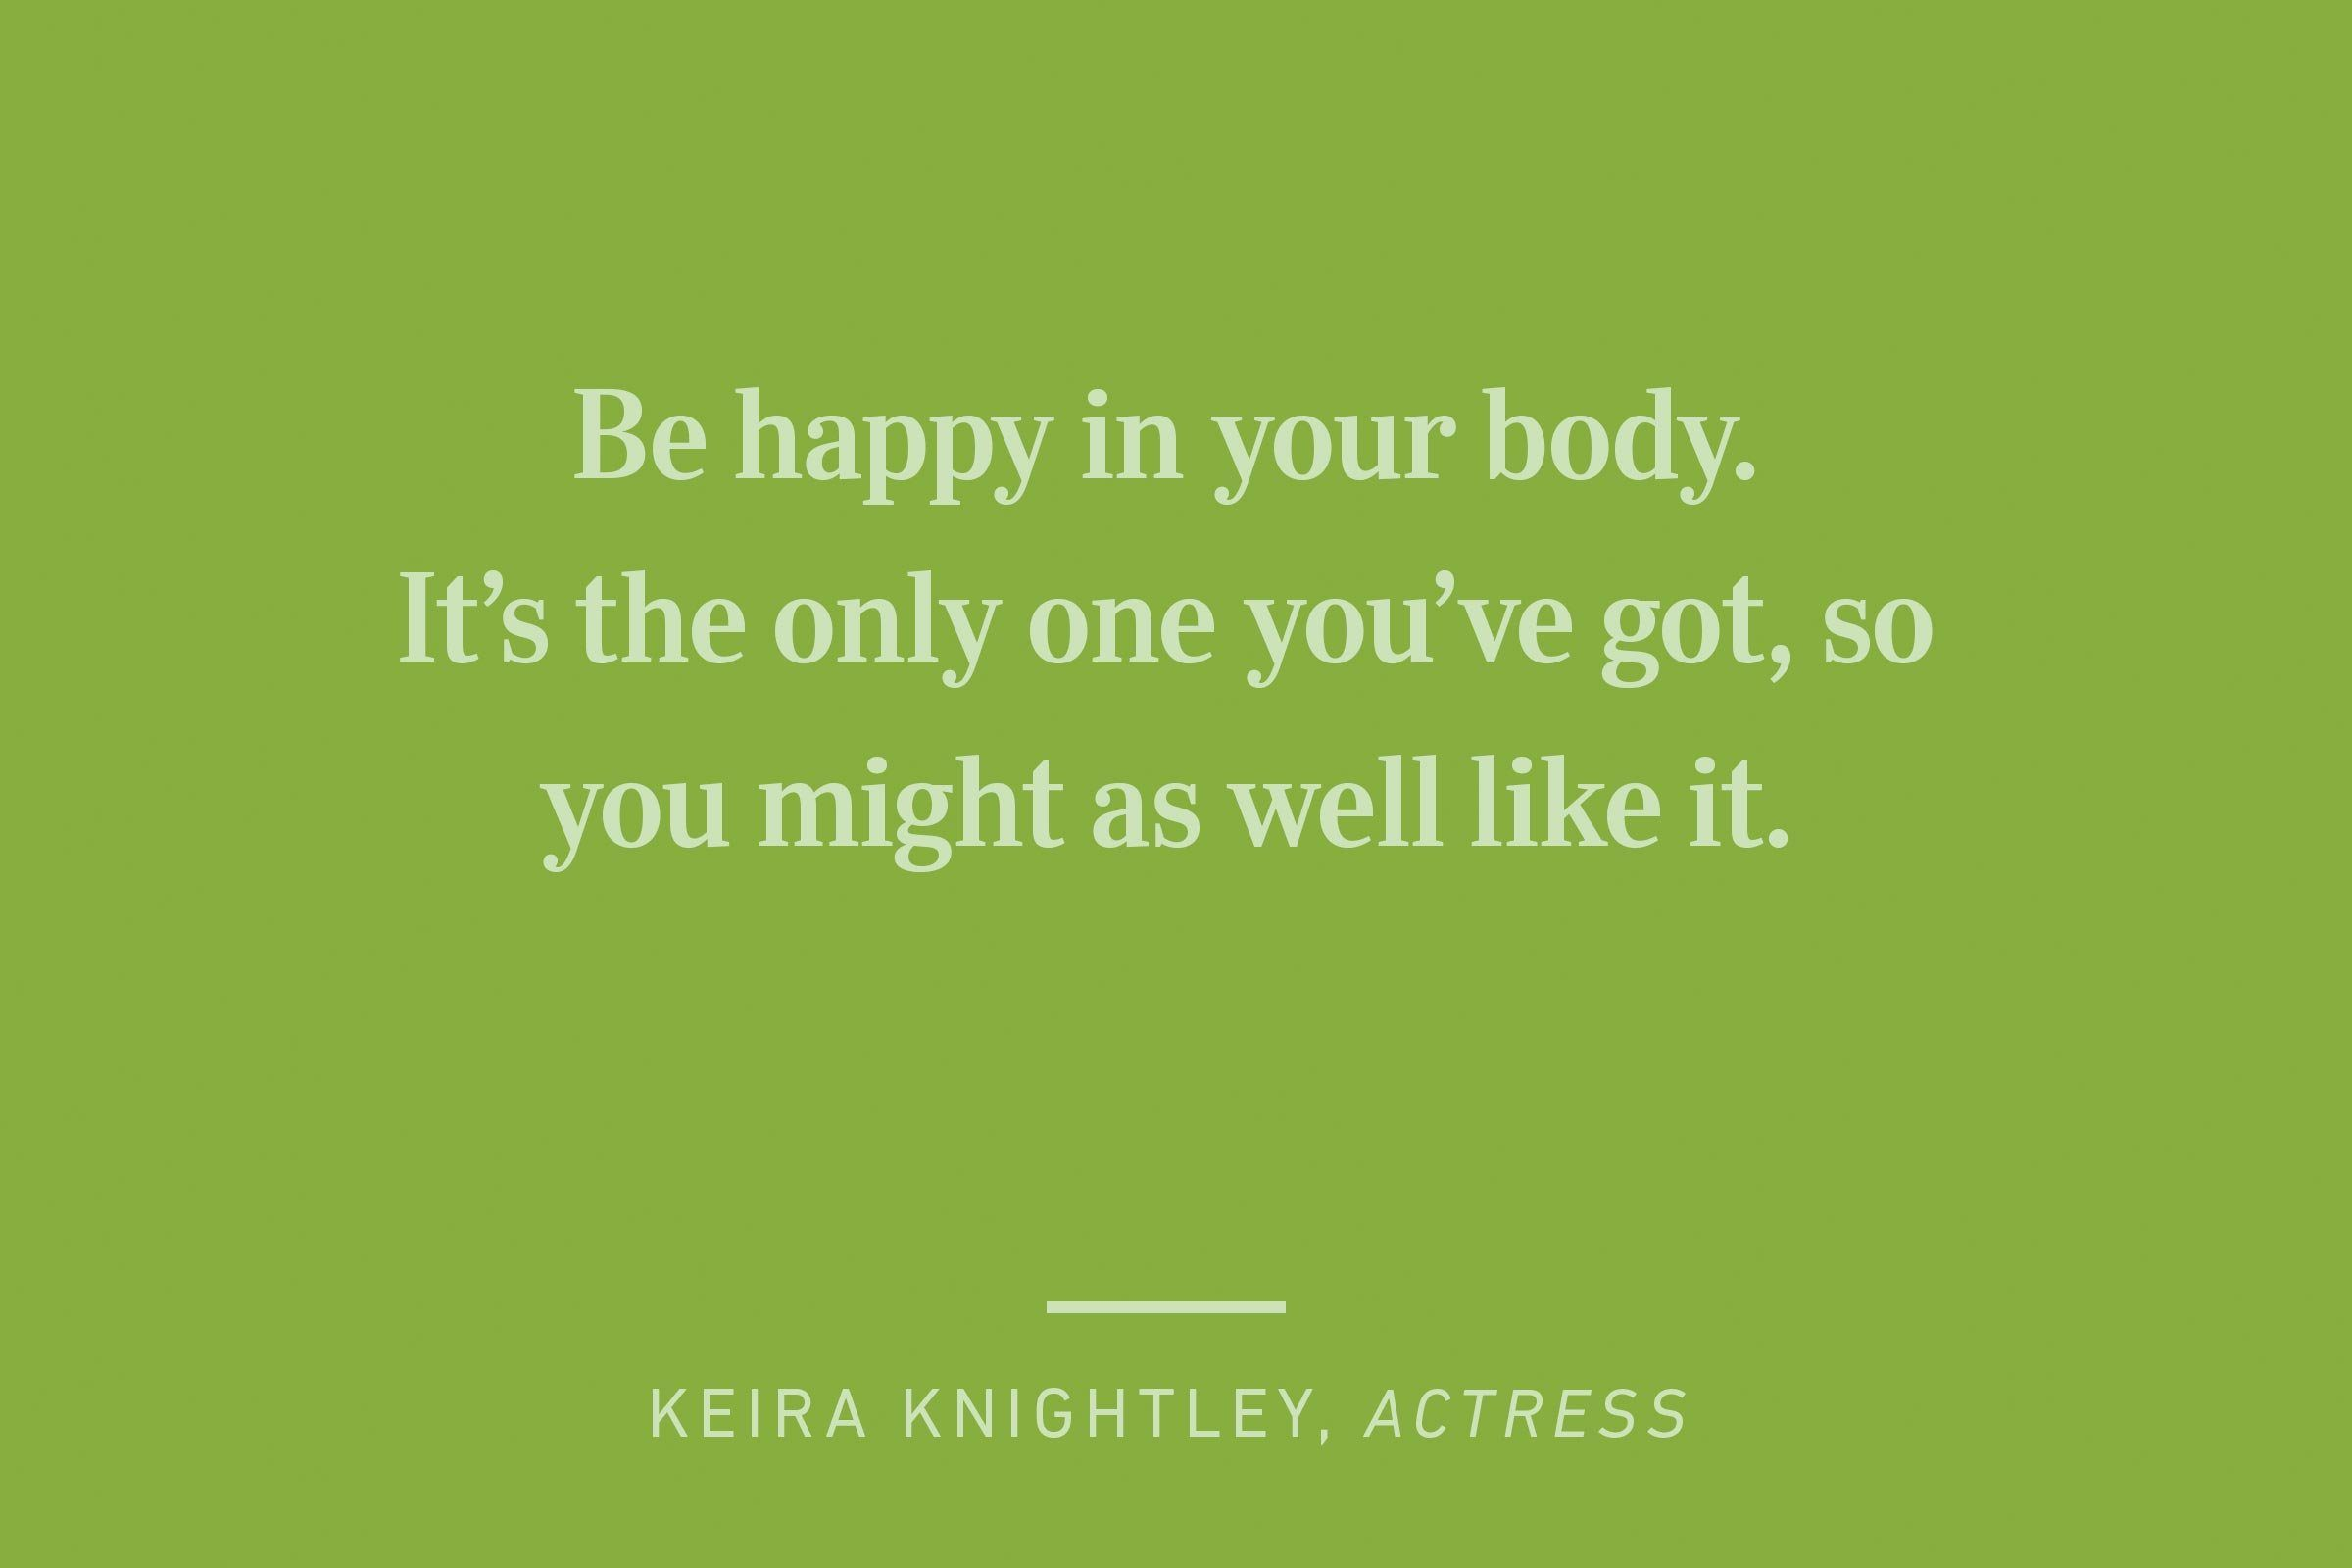 keira knightly happiness quote